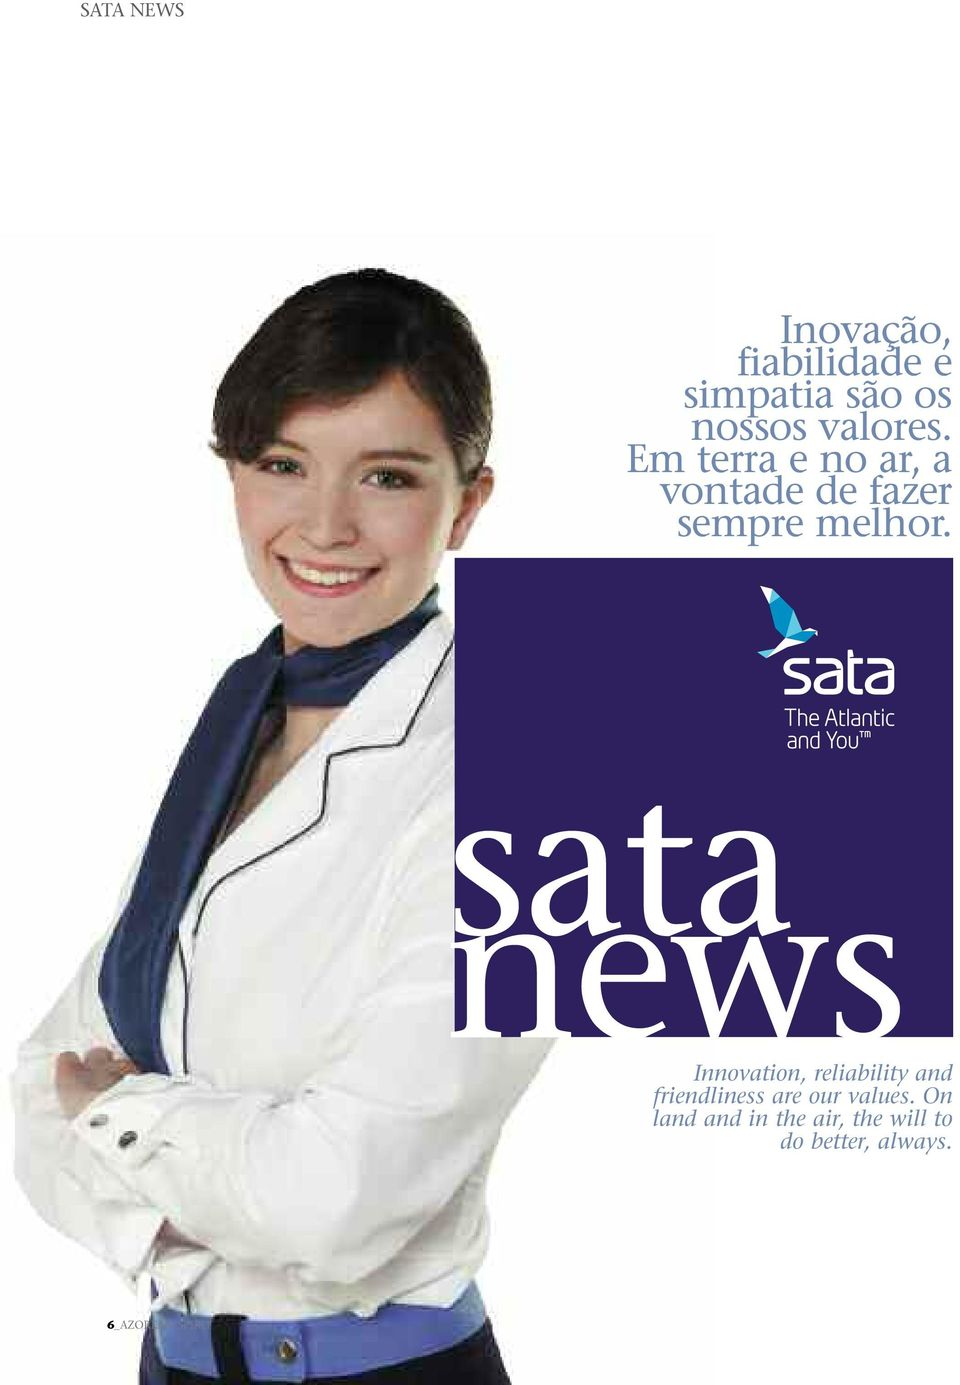 sata news Innovation, reliability and friendliness are our